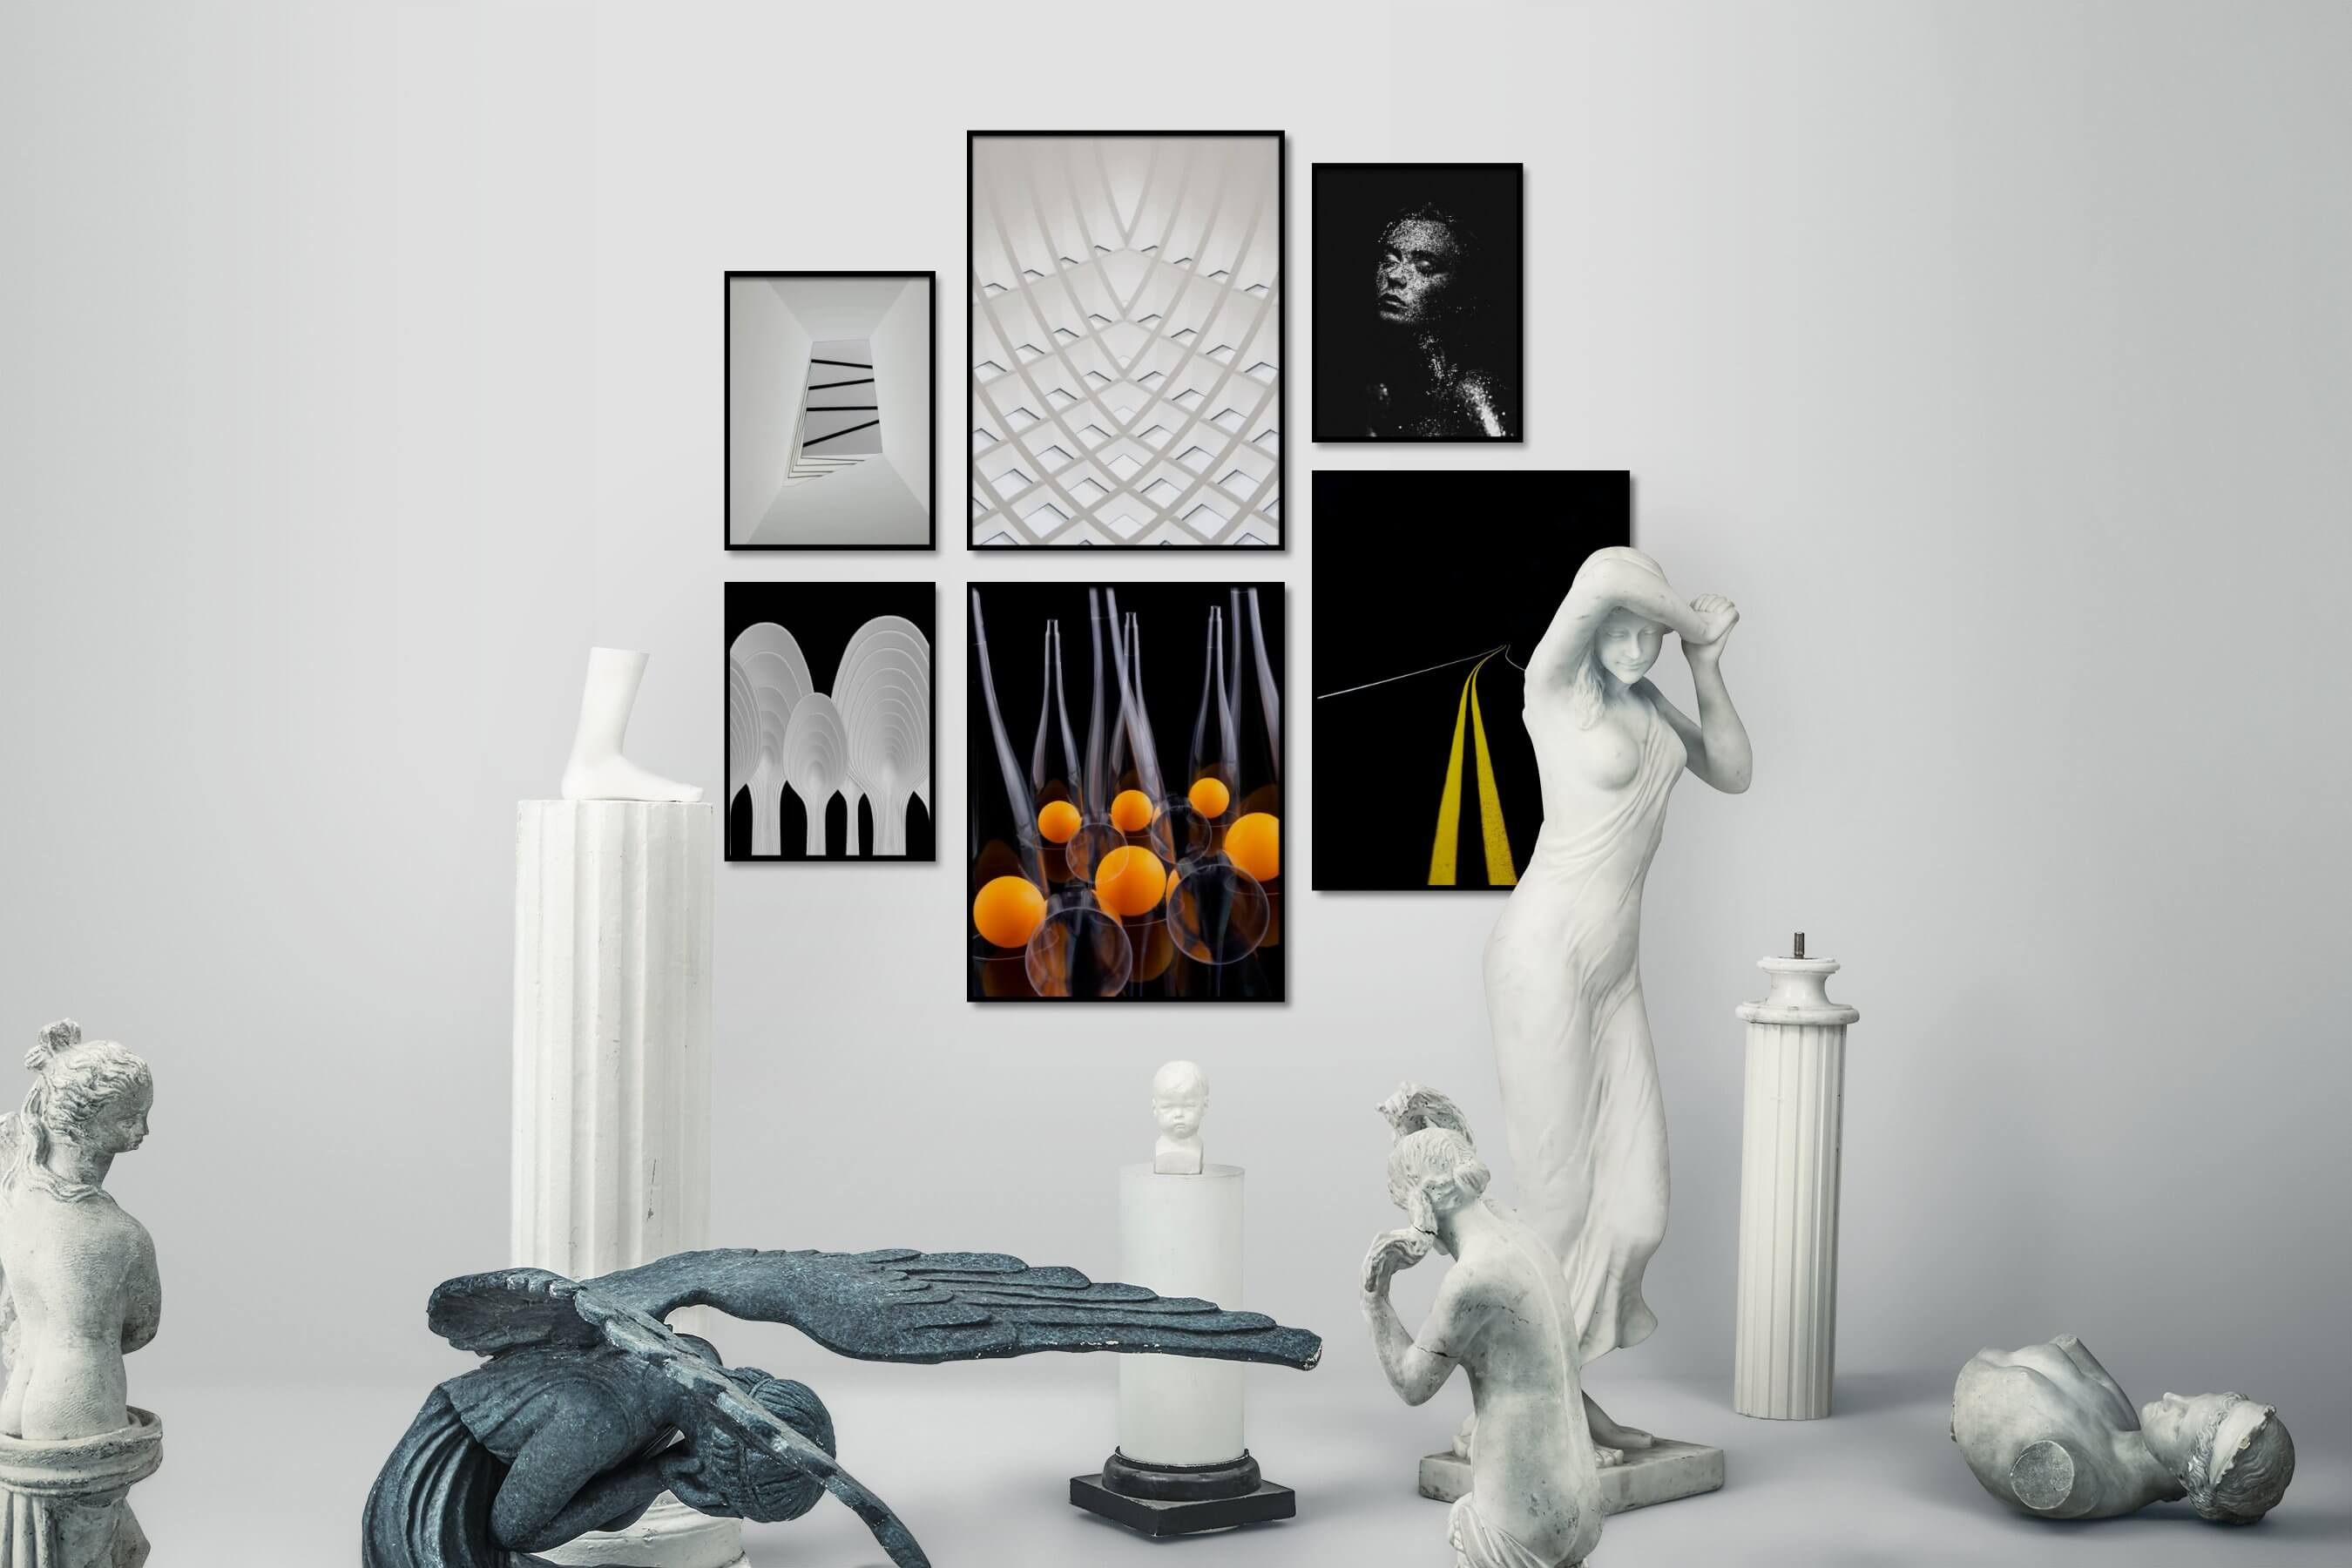 Gallery wall idea with six framed pictures arranged on a wall depicting For the Minimalist, For the Moderate, Black & White, Dark Tones, For the Maximalist, and Fashion & Beauty